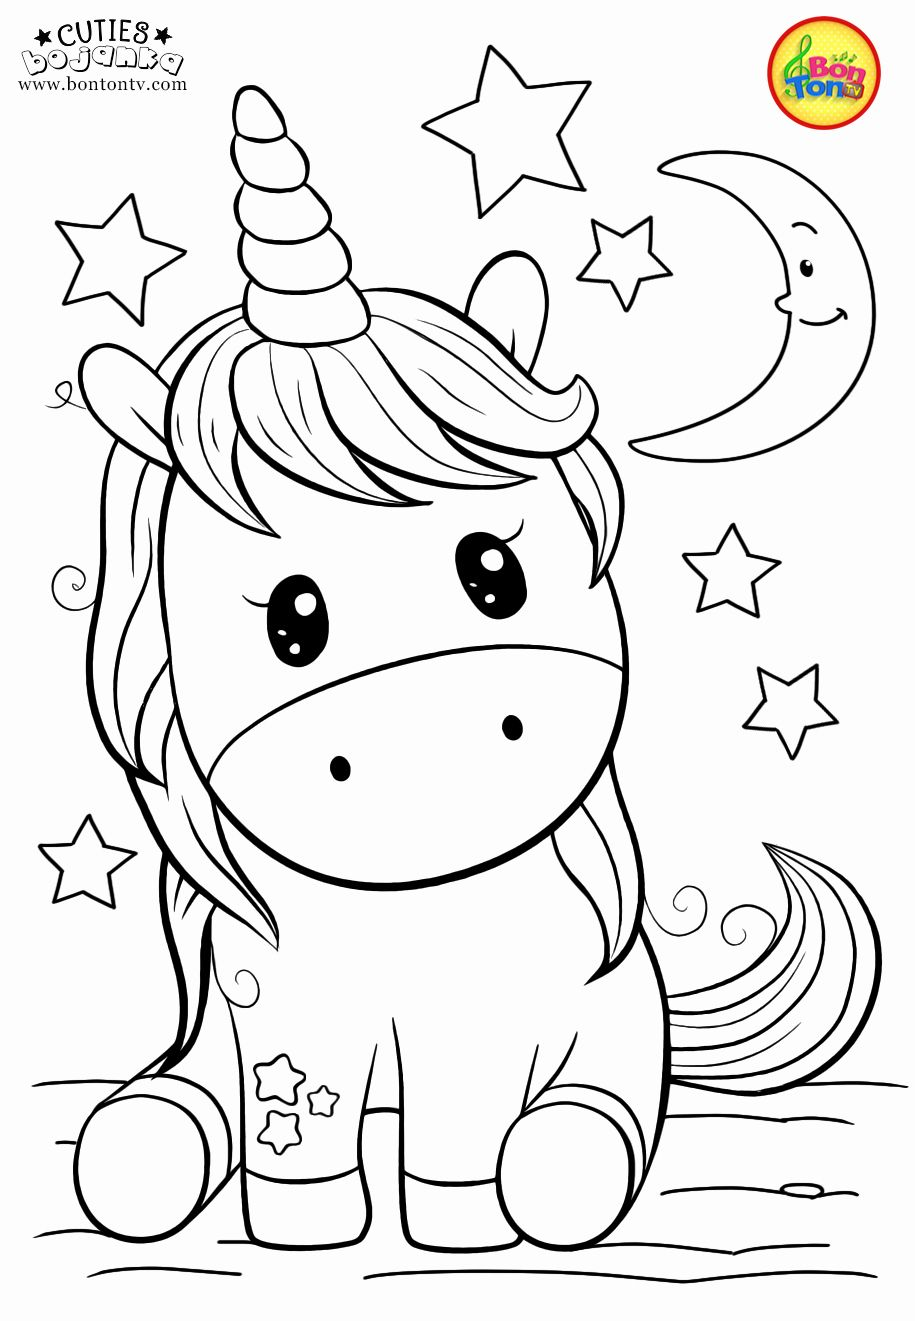 Animal Coloring Pages For 6 Year Olds Elegant Cuties Coloring Pages For Kids Free Preschool Pr Unicorn Coloring Pages Lion Coloring Pages Animal Coloring Pages